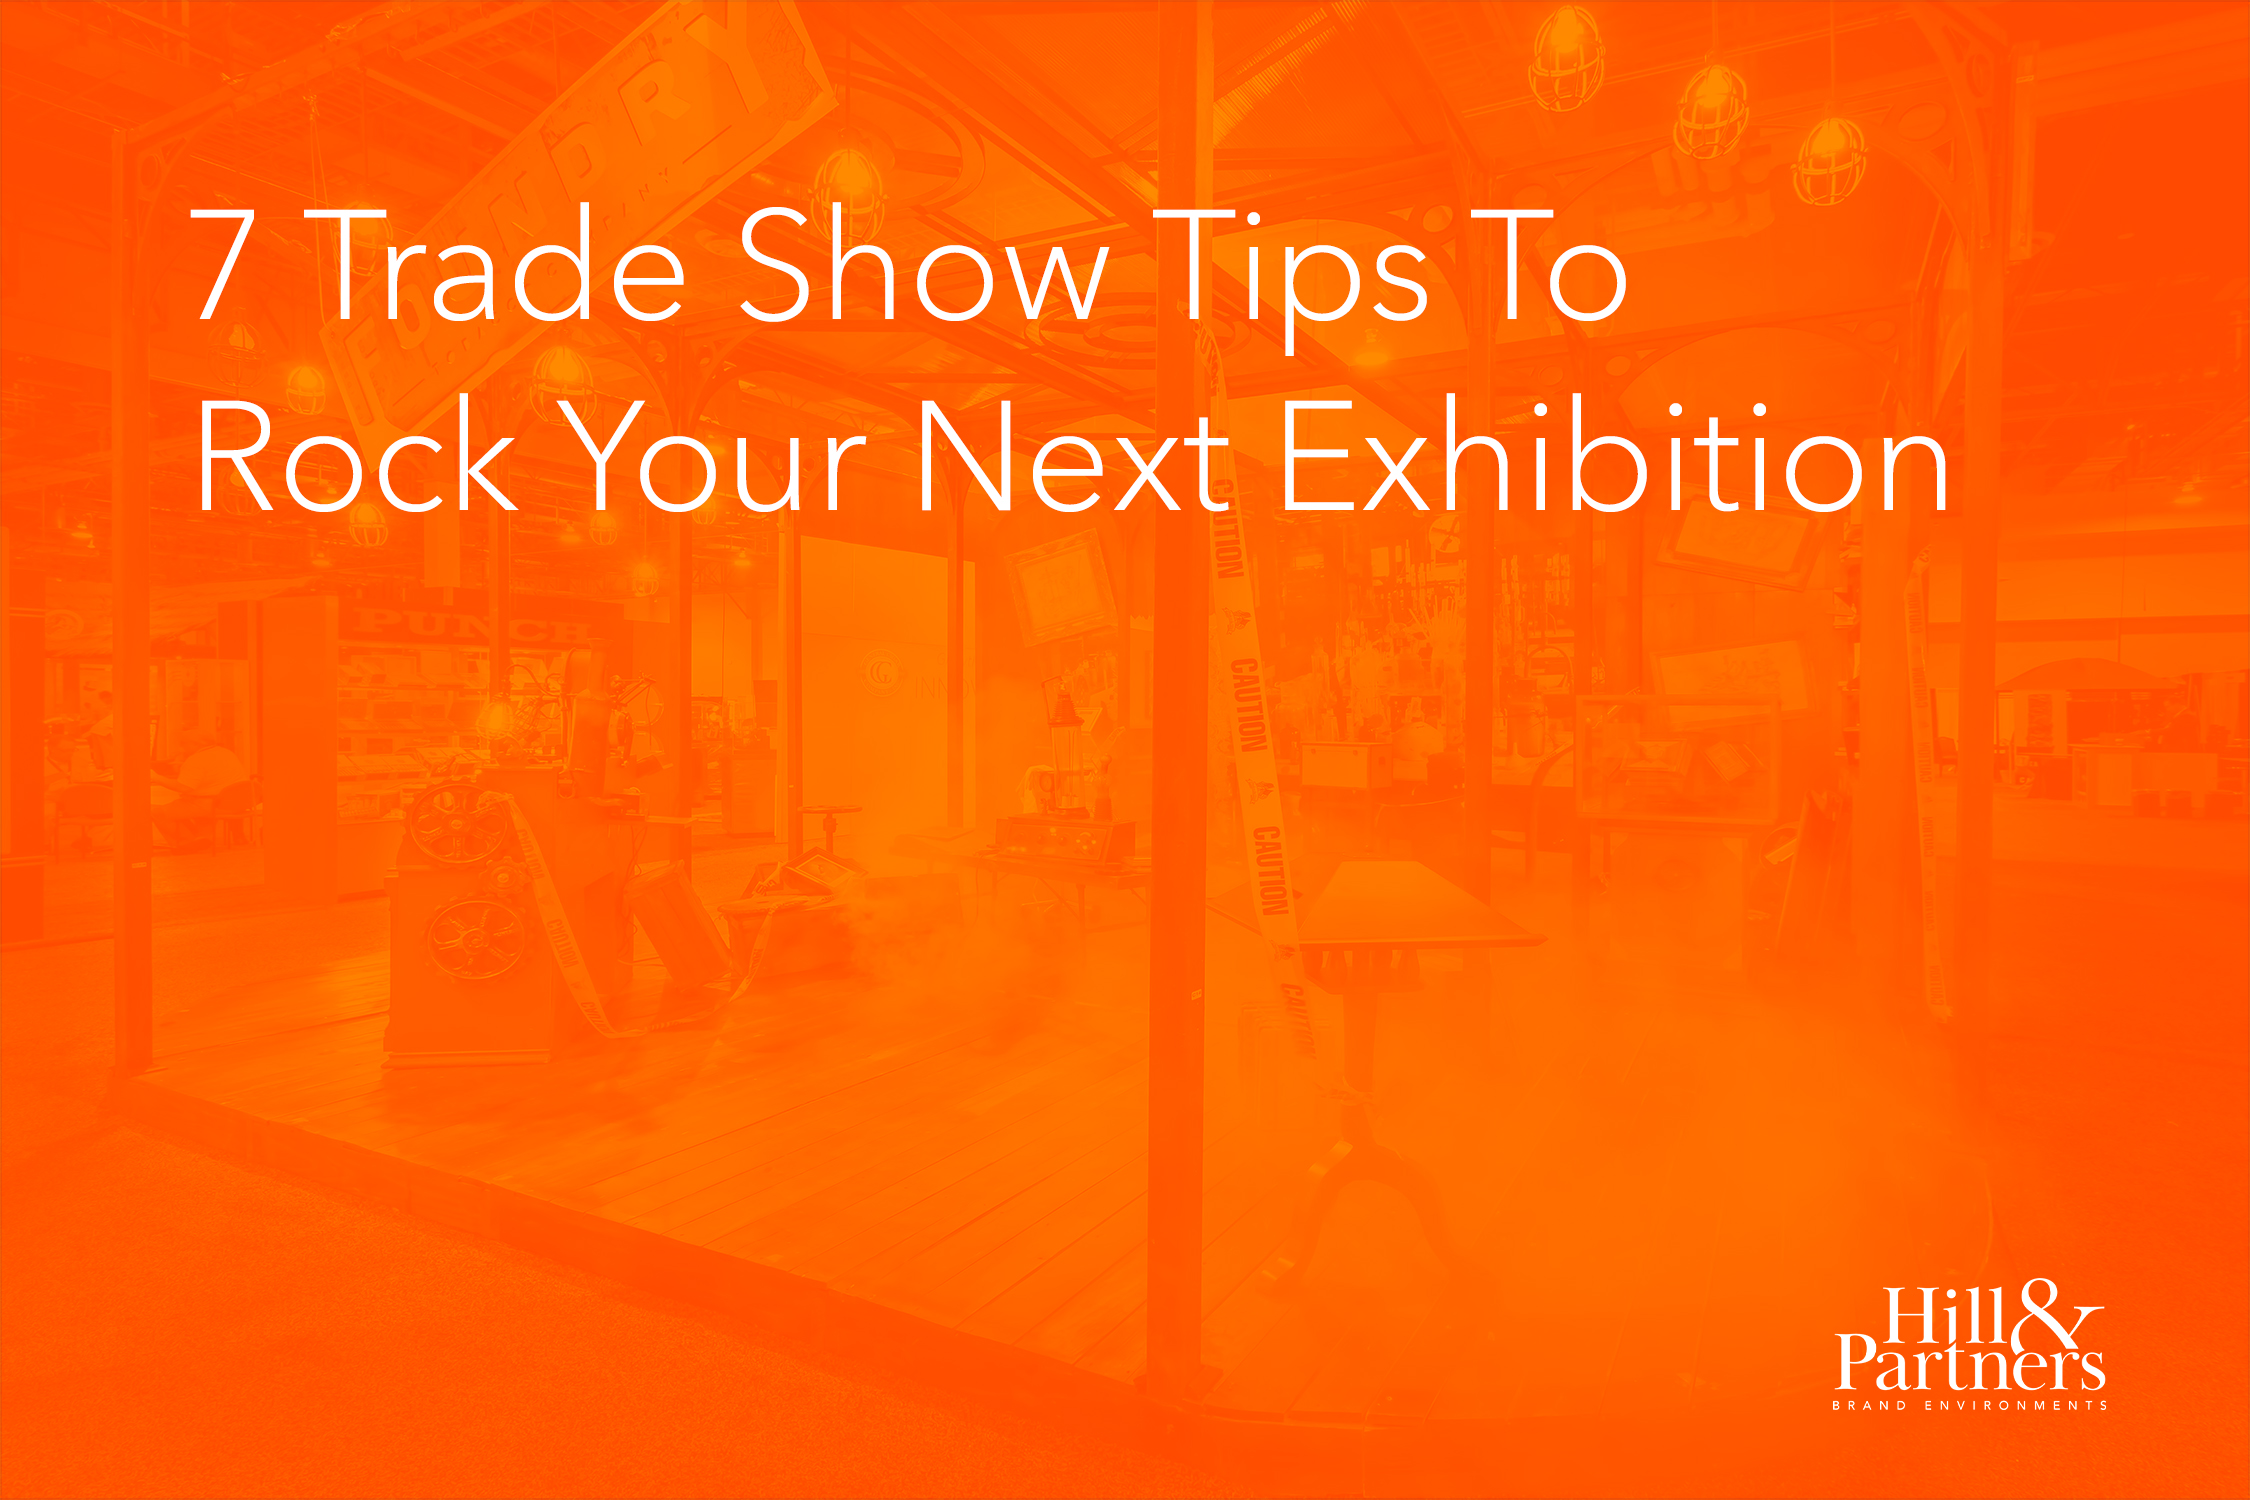 7 Trade Show Tips To Rock Your Next Exhibition